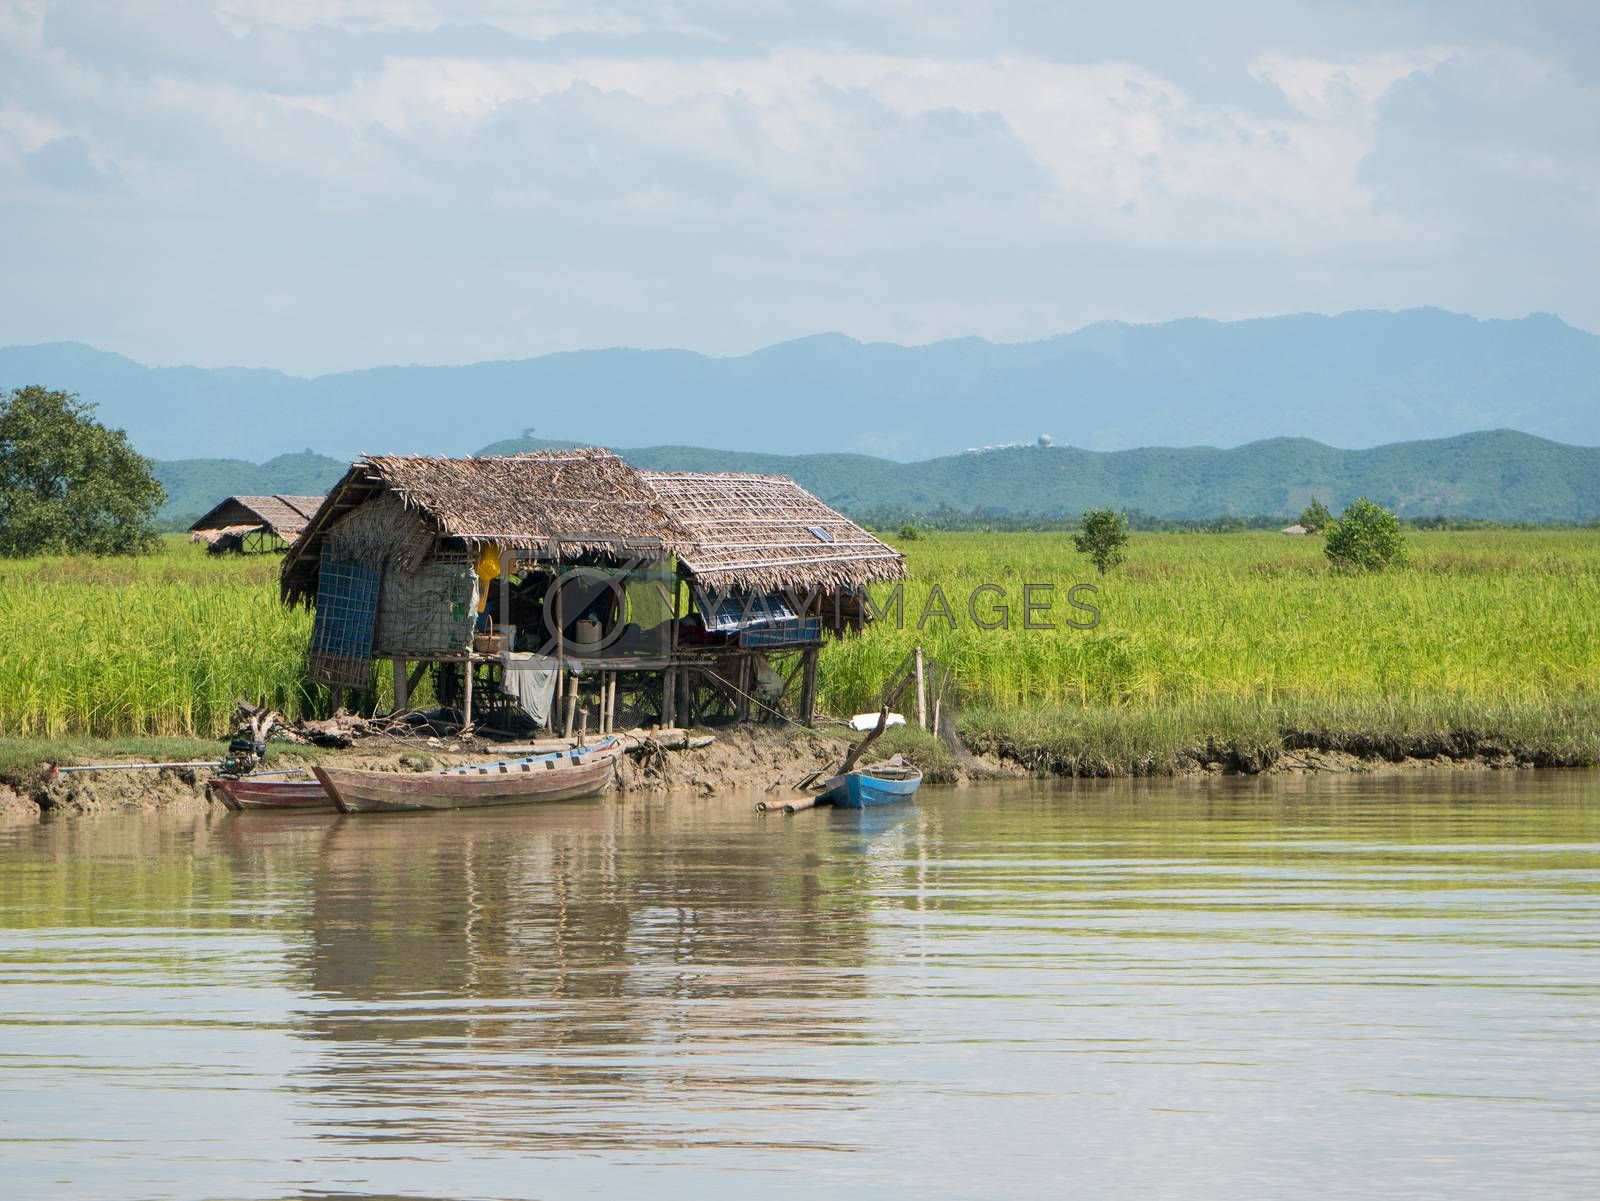 Traditional farmhouses made from straw along the Kaladan River in the Rakhine State of Myanmar.